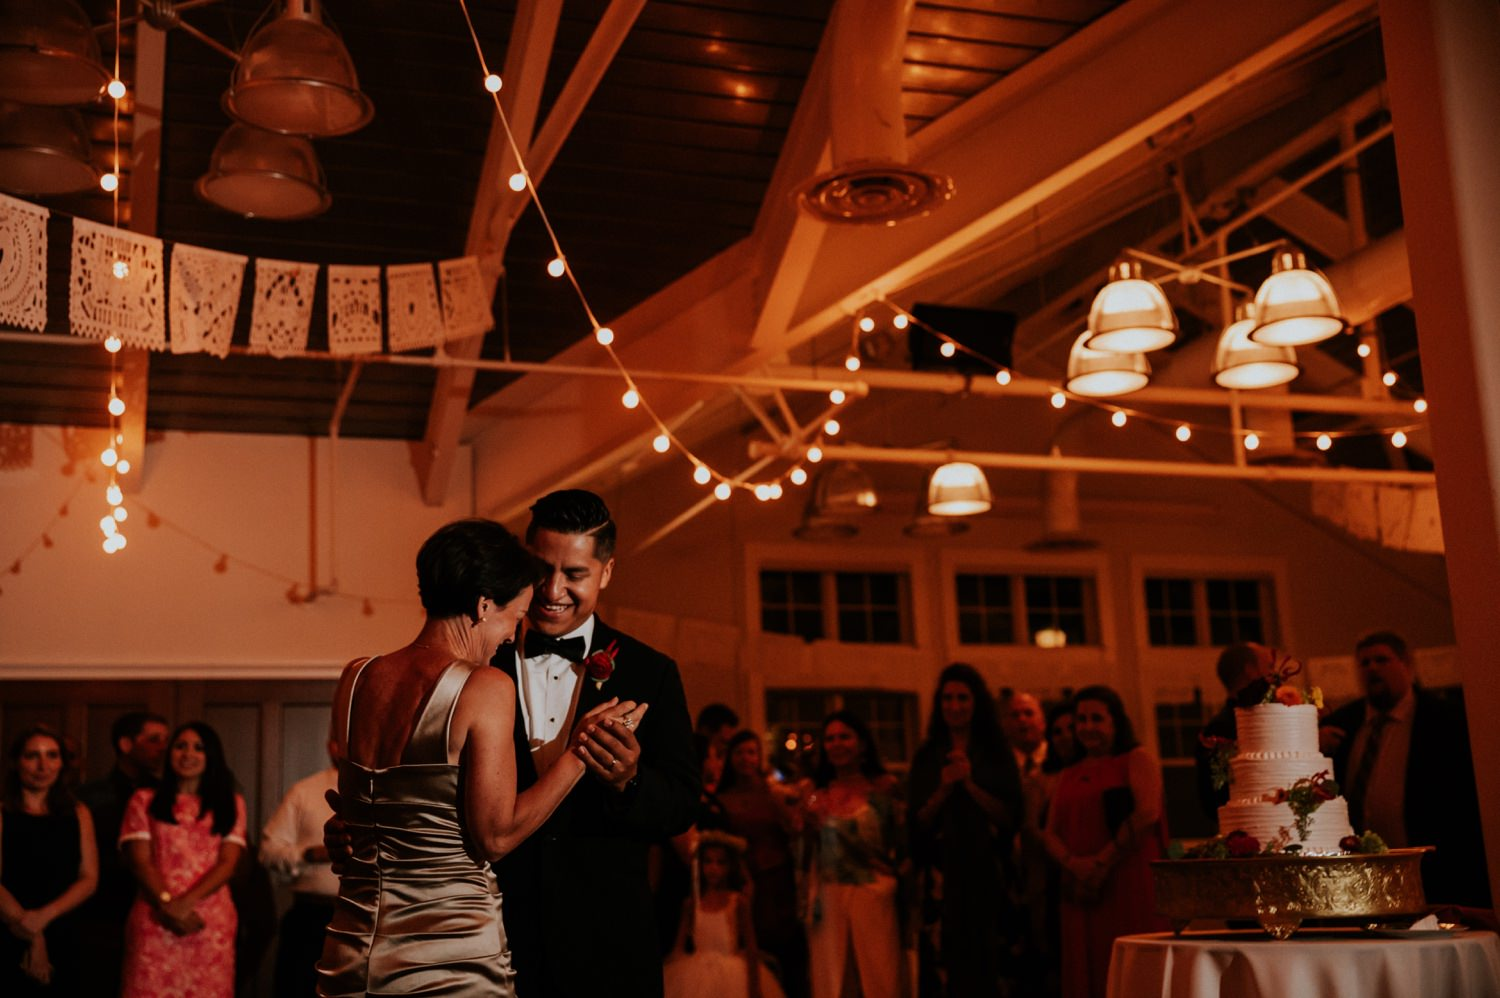 Connecticut Wedding, Glastonbury Boathouse Wedding, Connecticut Wedding Photographer, Glastonbury Wedding Photographer, Connecticut Wedding Photography, Connecticut Bride, Lovely Bride, Glastonbury Connecticut Wedding Photographer, Glastonbury Connecticut Wedding, Lake Wedding, Lake Ceremony, BOHO Wedding, Mexican Wedding, Mexican Wedding Inspiration, Multicultural Wedding, Creative Wedding Photography, Parent Dances, Groom Dance, Tuxedo Inspiration